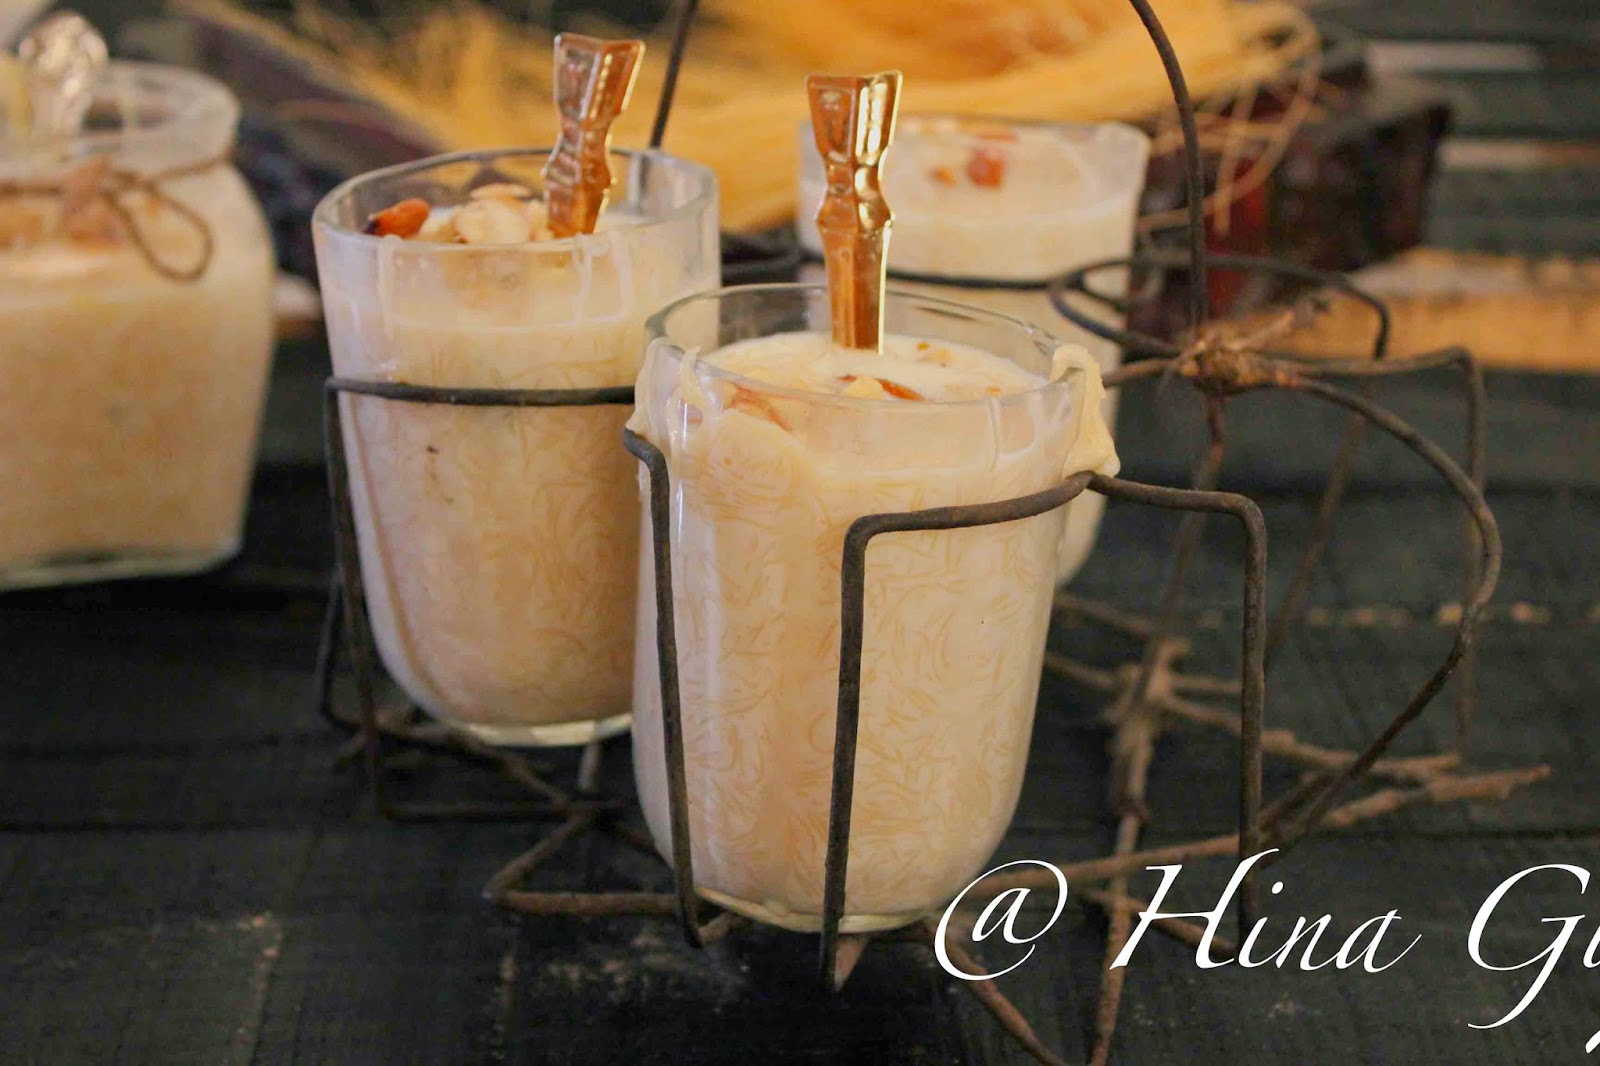 Sheer Khurma is one of the most delicious Indian dessert. Learn how to make delicious Sheer Khurma recipe, the sweet vermicelli pudding from scratch